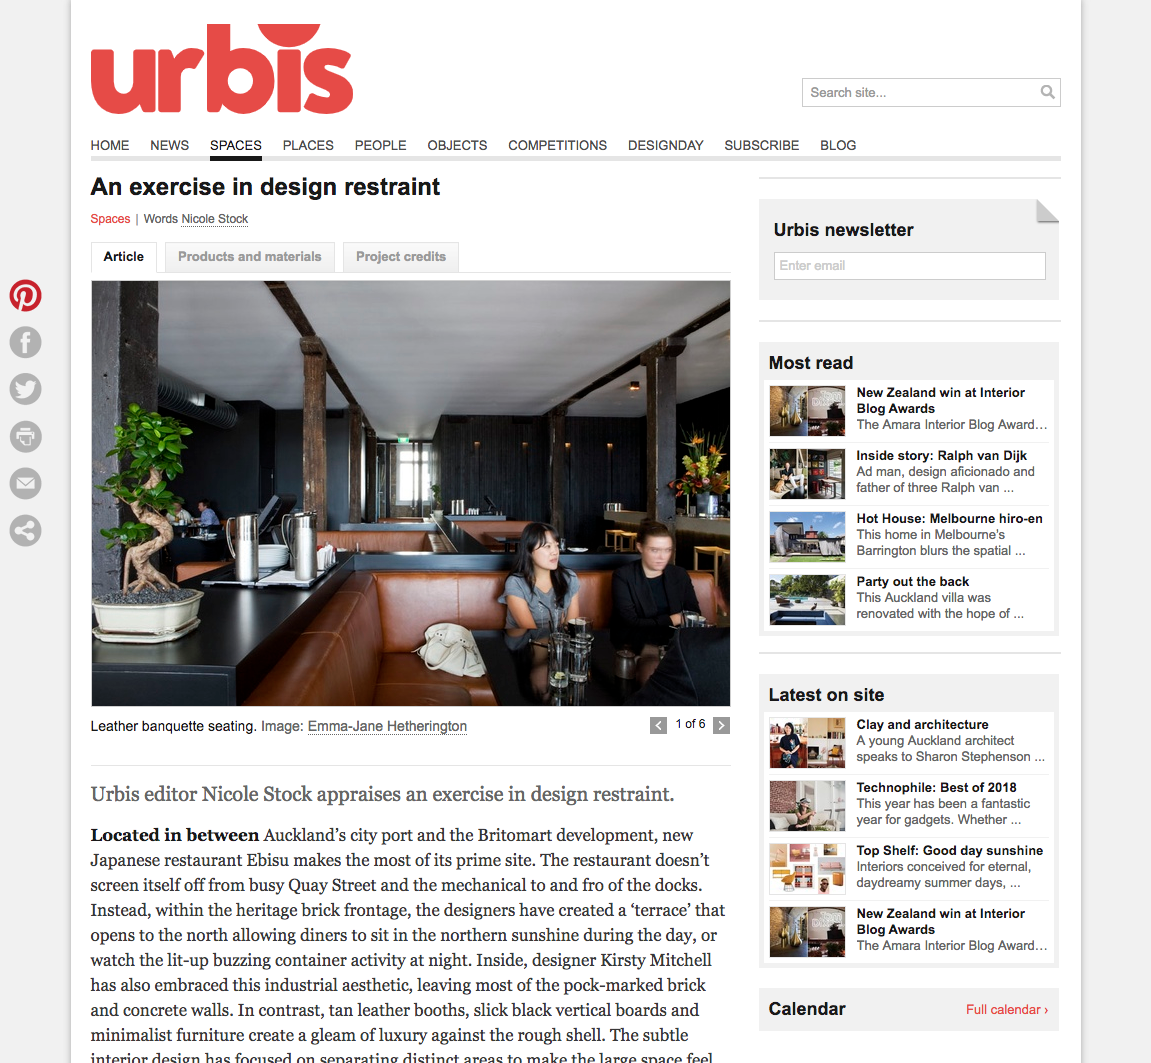 Urbis - An exercise in design restraint